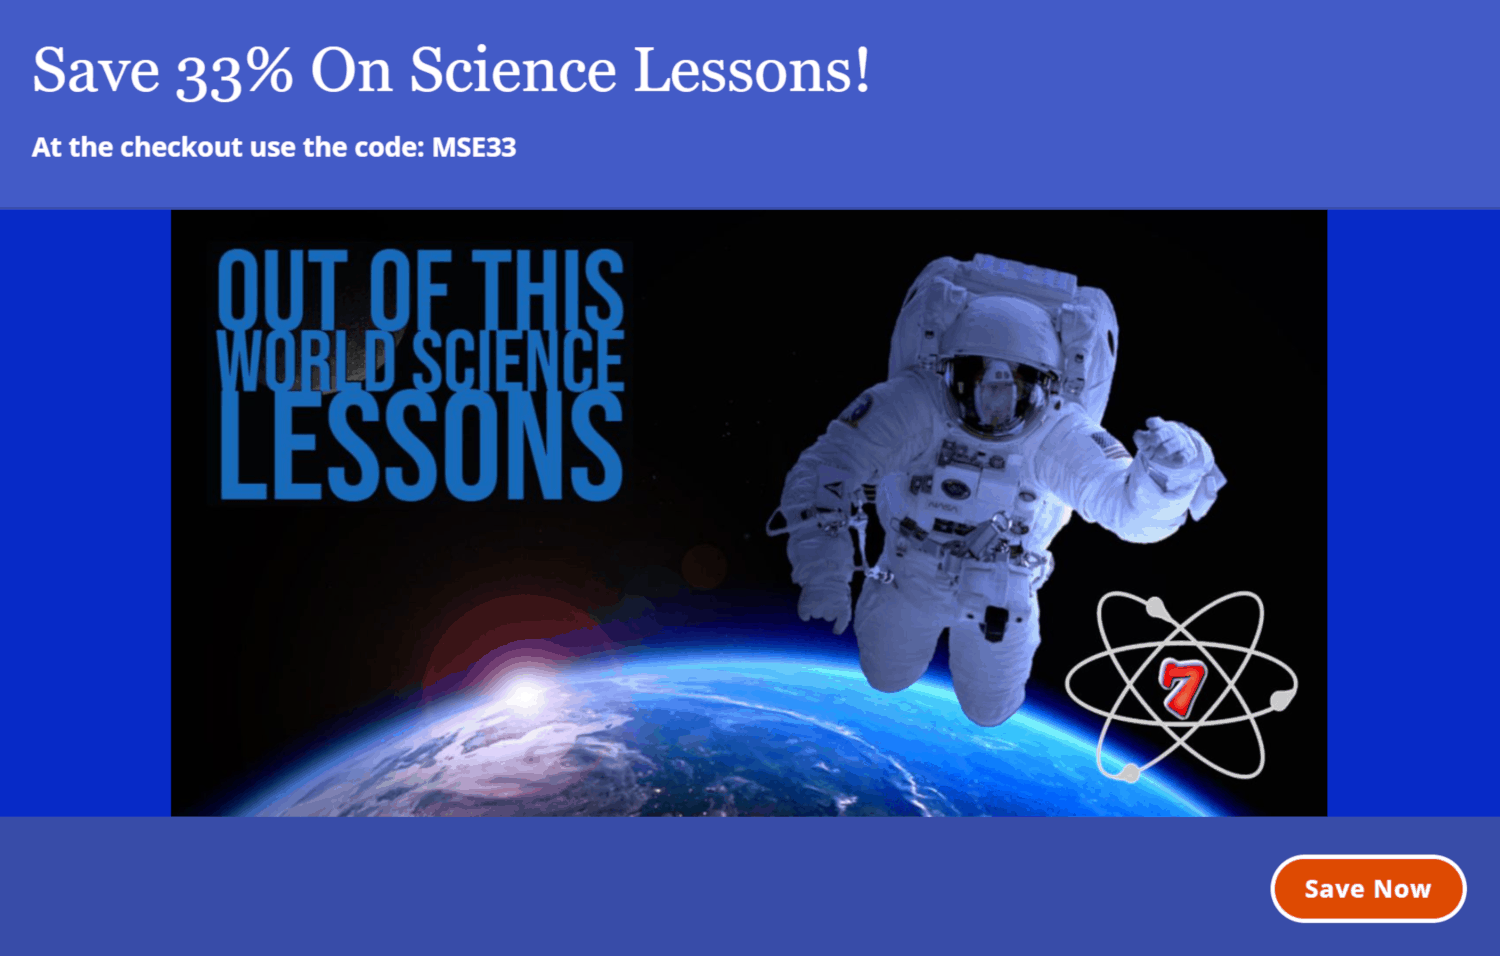 Make Science Easy Lessons